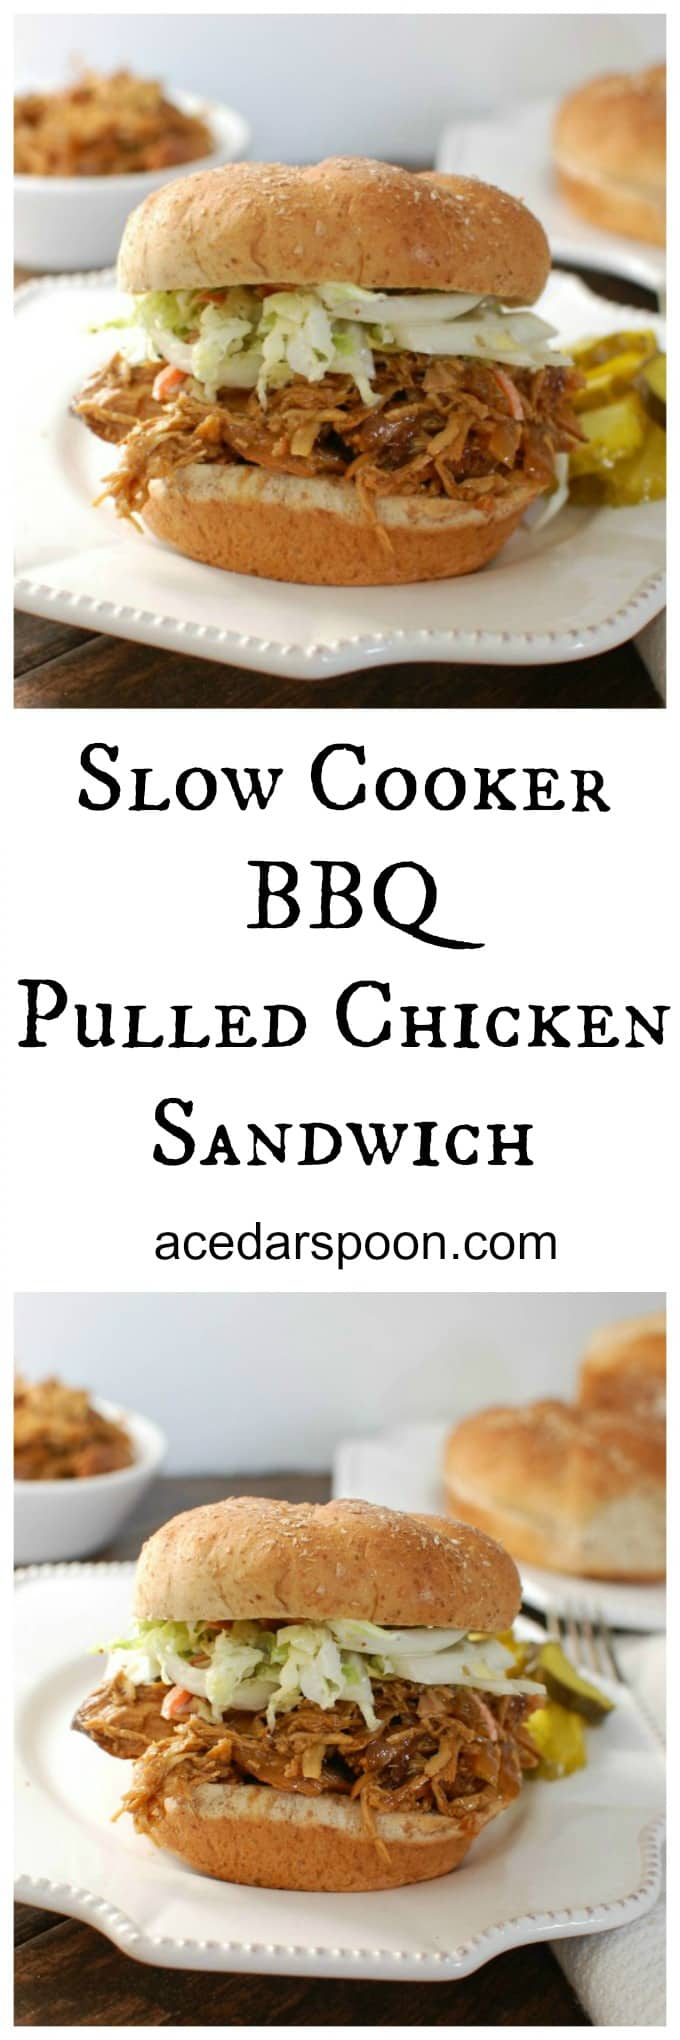 Slow Cooker BBQ Pulled Chicken Sandwich - slow cooker goodness